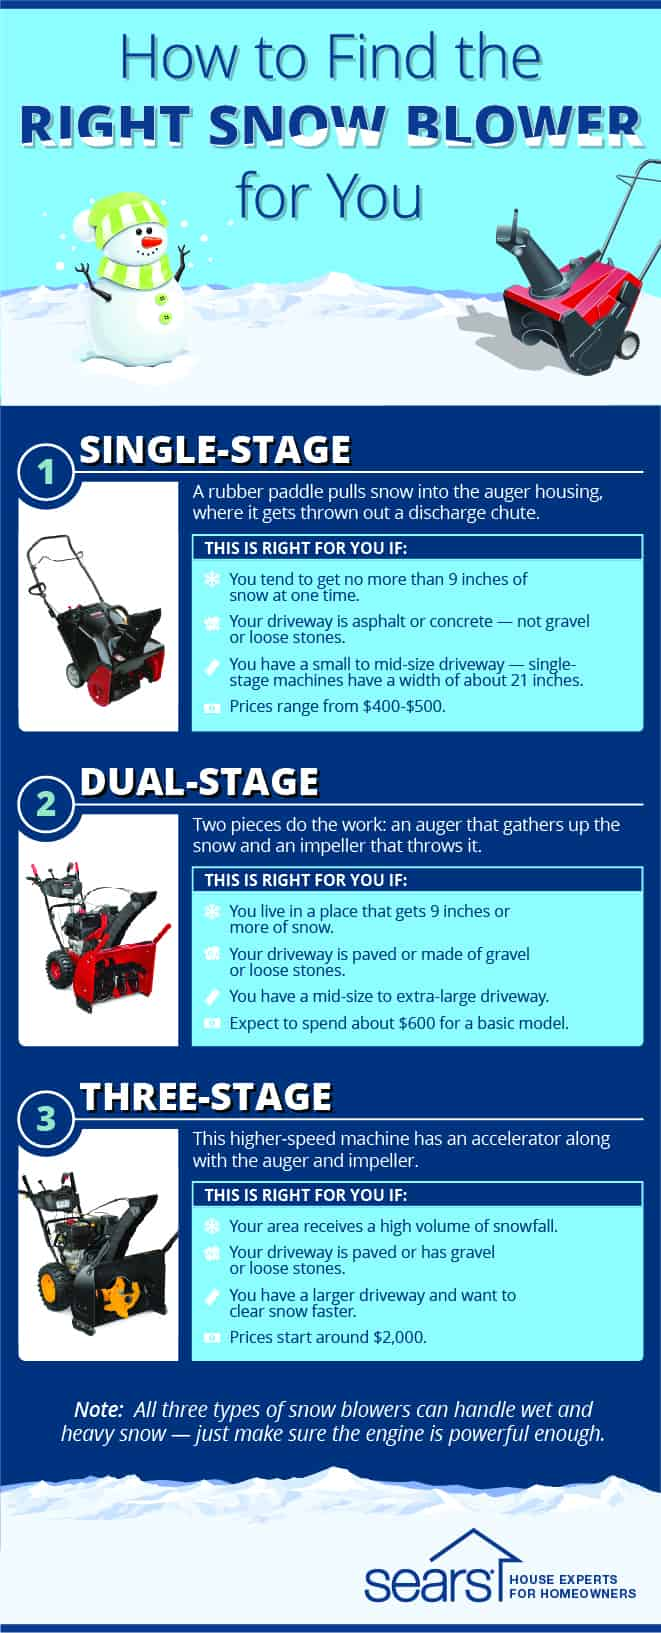 How to Find the Right Snow Blower for You Infographic